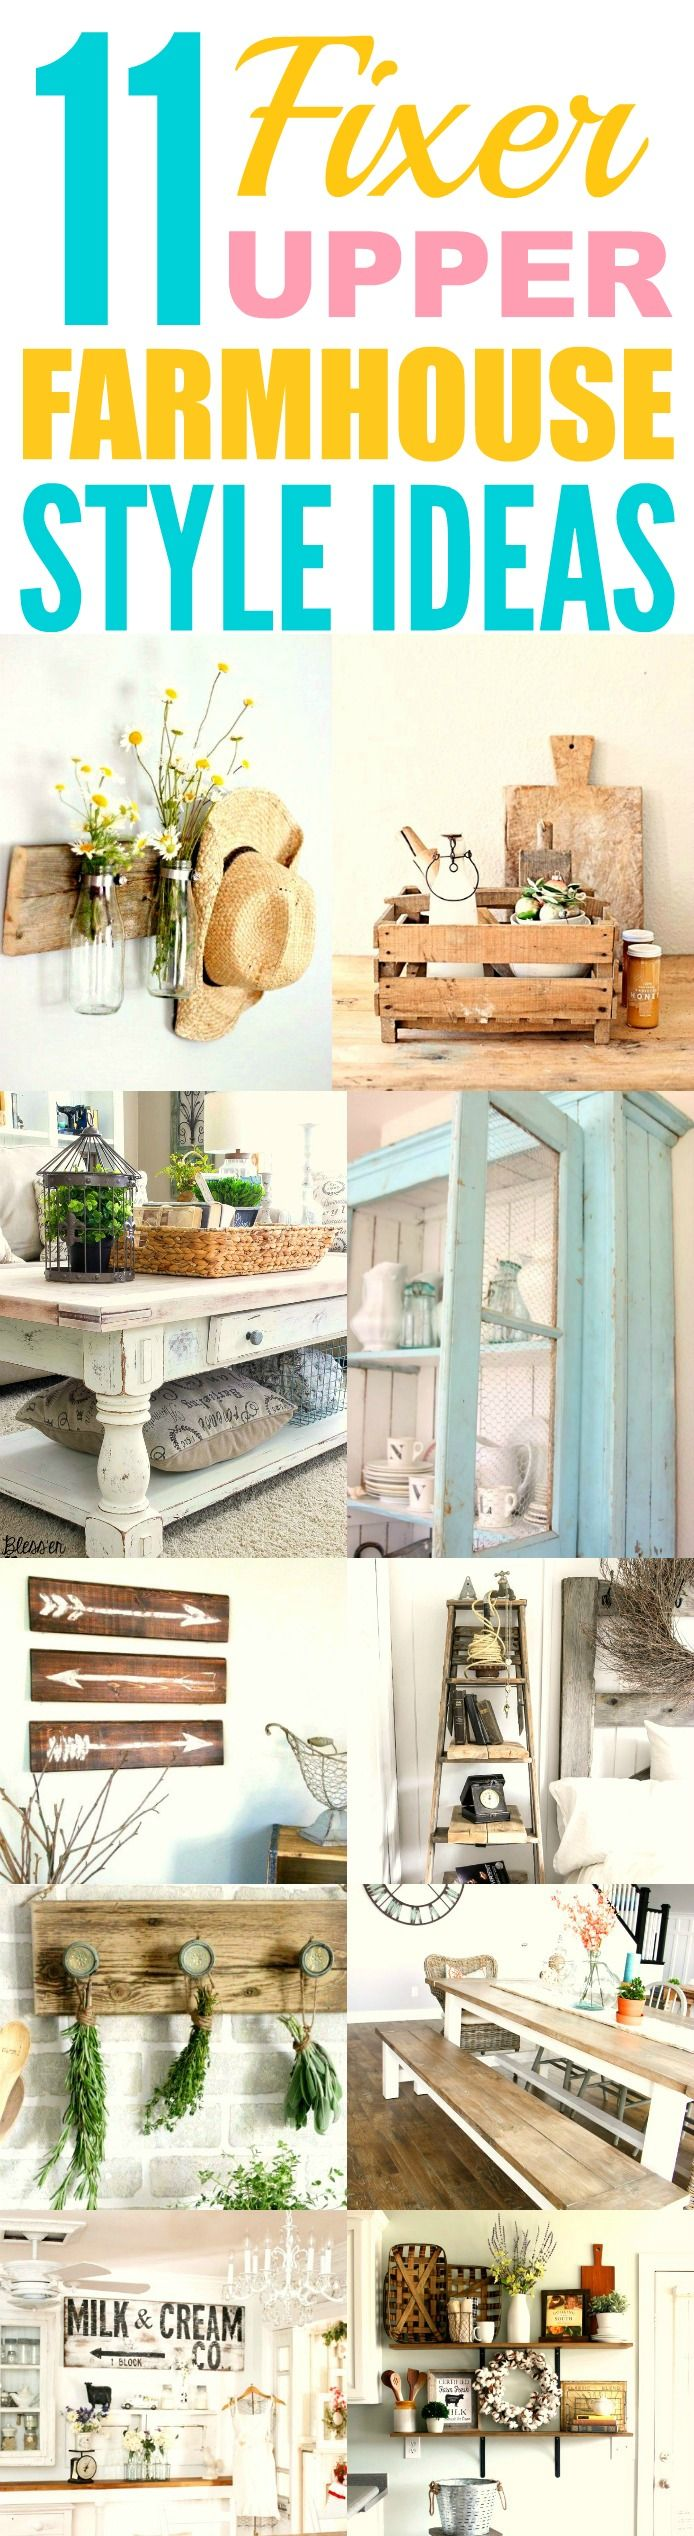 These 11 Fixer upper farmhouse DIY and style ideas are THE BEST! I'm so glad I found these AWESOME decor tips! Now I can finally make my home look like how Chip and Joanne